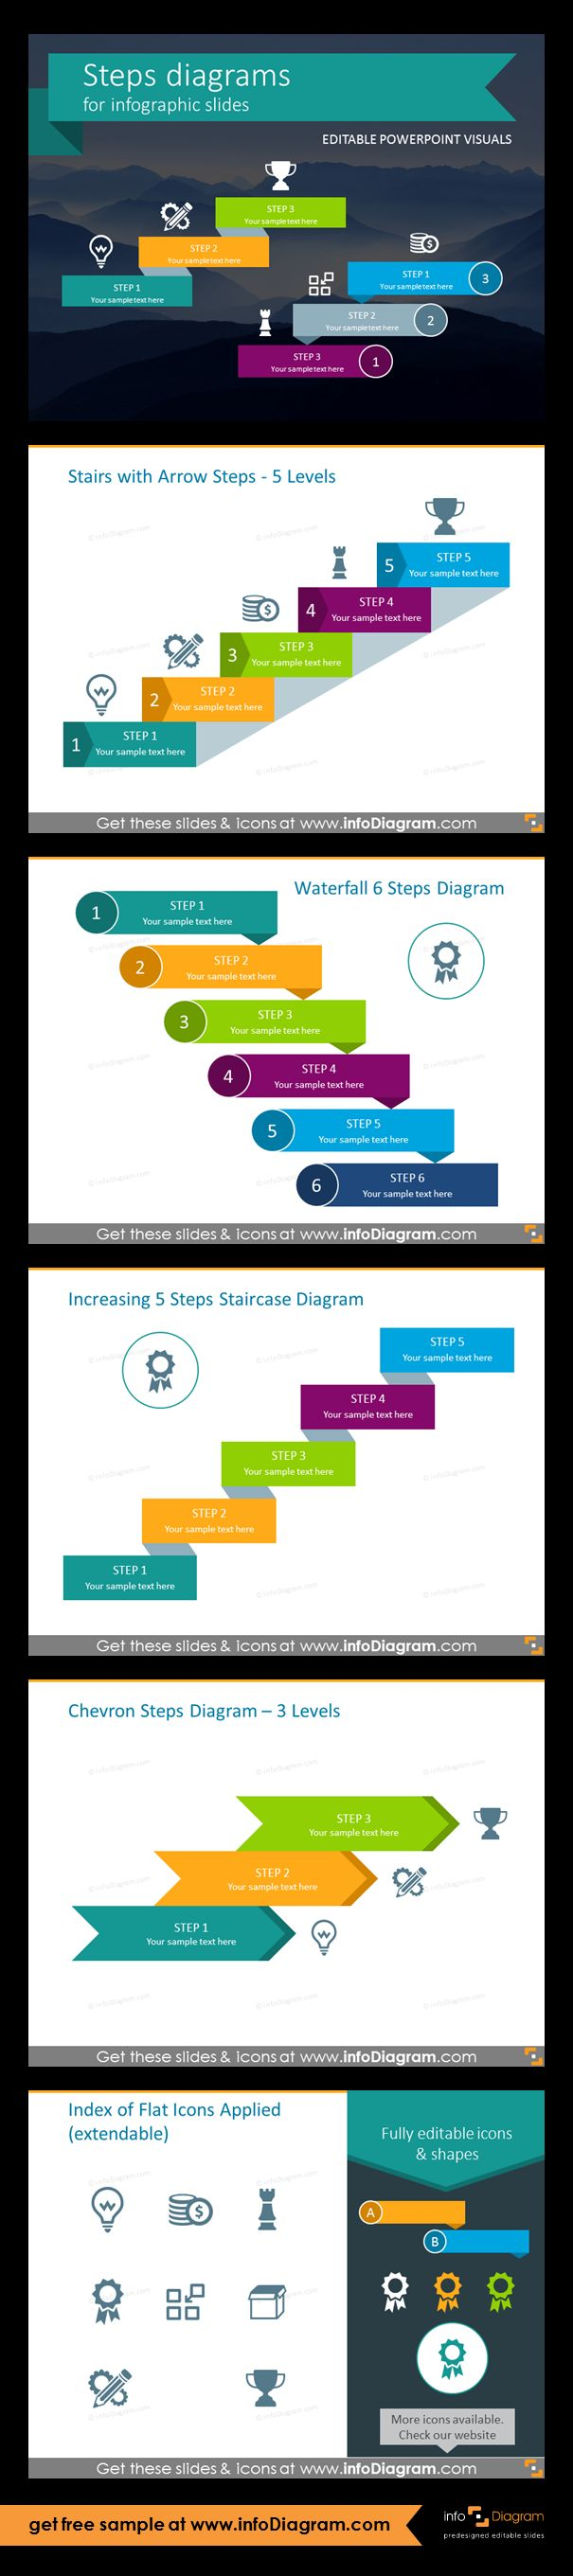 Template slides for Steps diagrams and Staircase infographics. Editable PowerPoint graphics for showing progress flow charts, project stages, planning phases and roadmaps by modern infographics. Fully editable style, size and colors. Stairs with arrow steps - 5 levels, waterfall 6-steps chart, increasing 5 steps staircase, chevron steps diagram - 3 levels, flat icons. Add 3D steps as an inspiration how to organise the information on the slide, in case of presenting procedures.